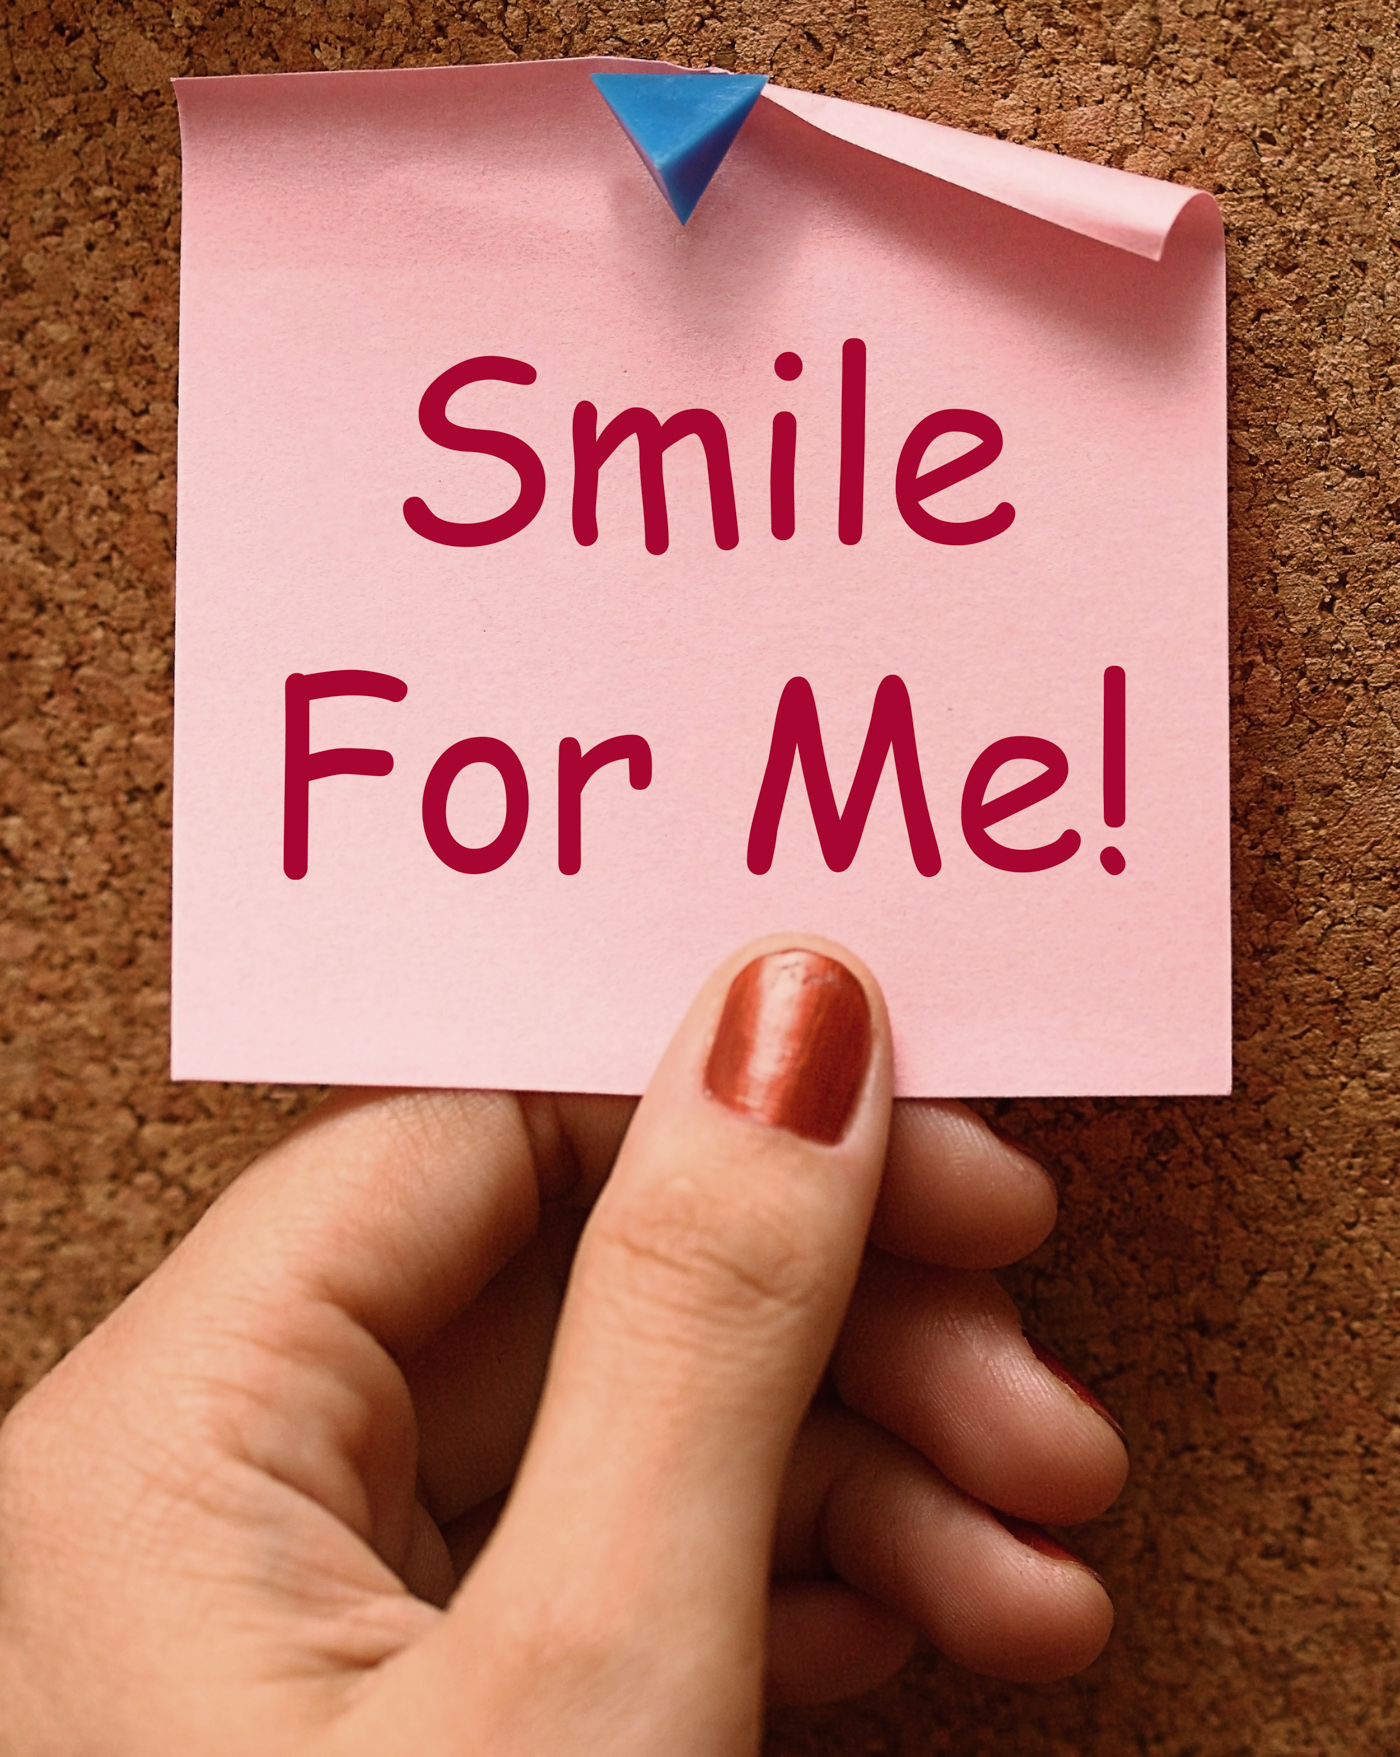 Smile For Me Note Means Be Happy Cheerful, Behappy, Cheerful, Friendly, Grin, HQ Photo